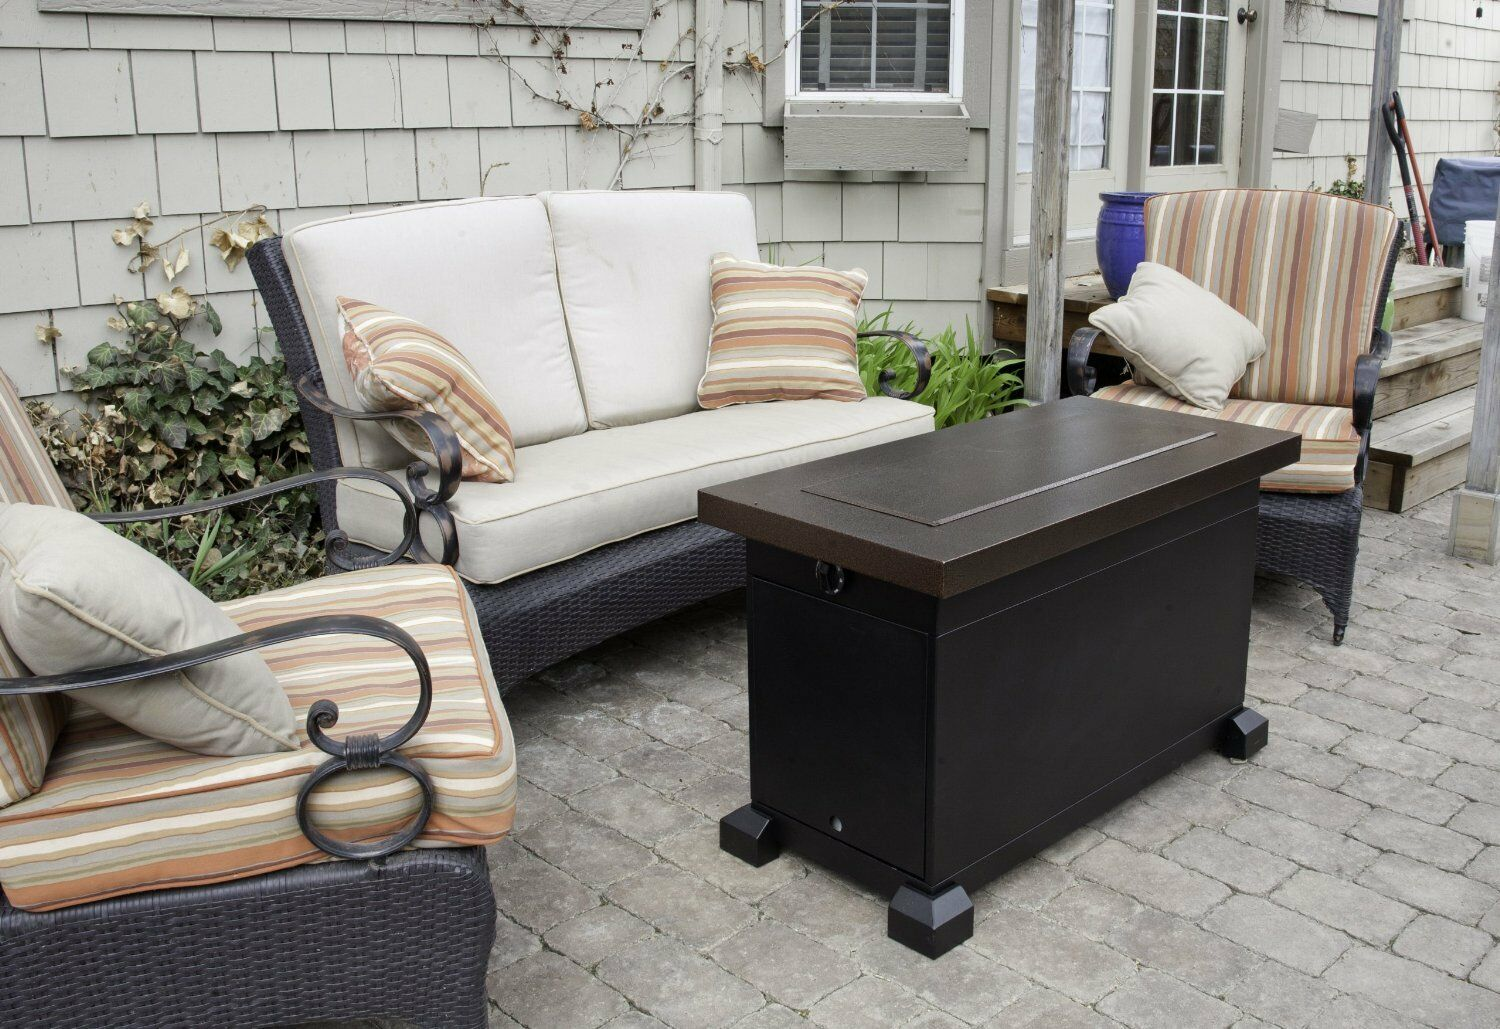 Propane Fire Pit Table Top Outdoor Patio Fireplace Decorativ